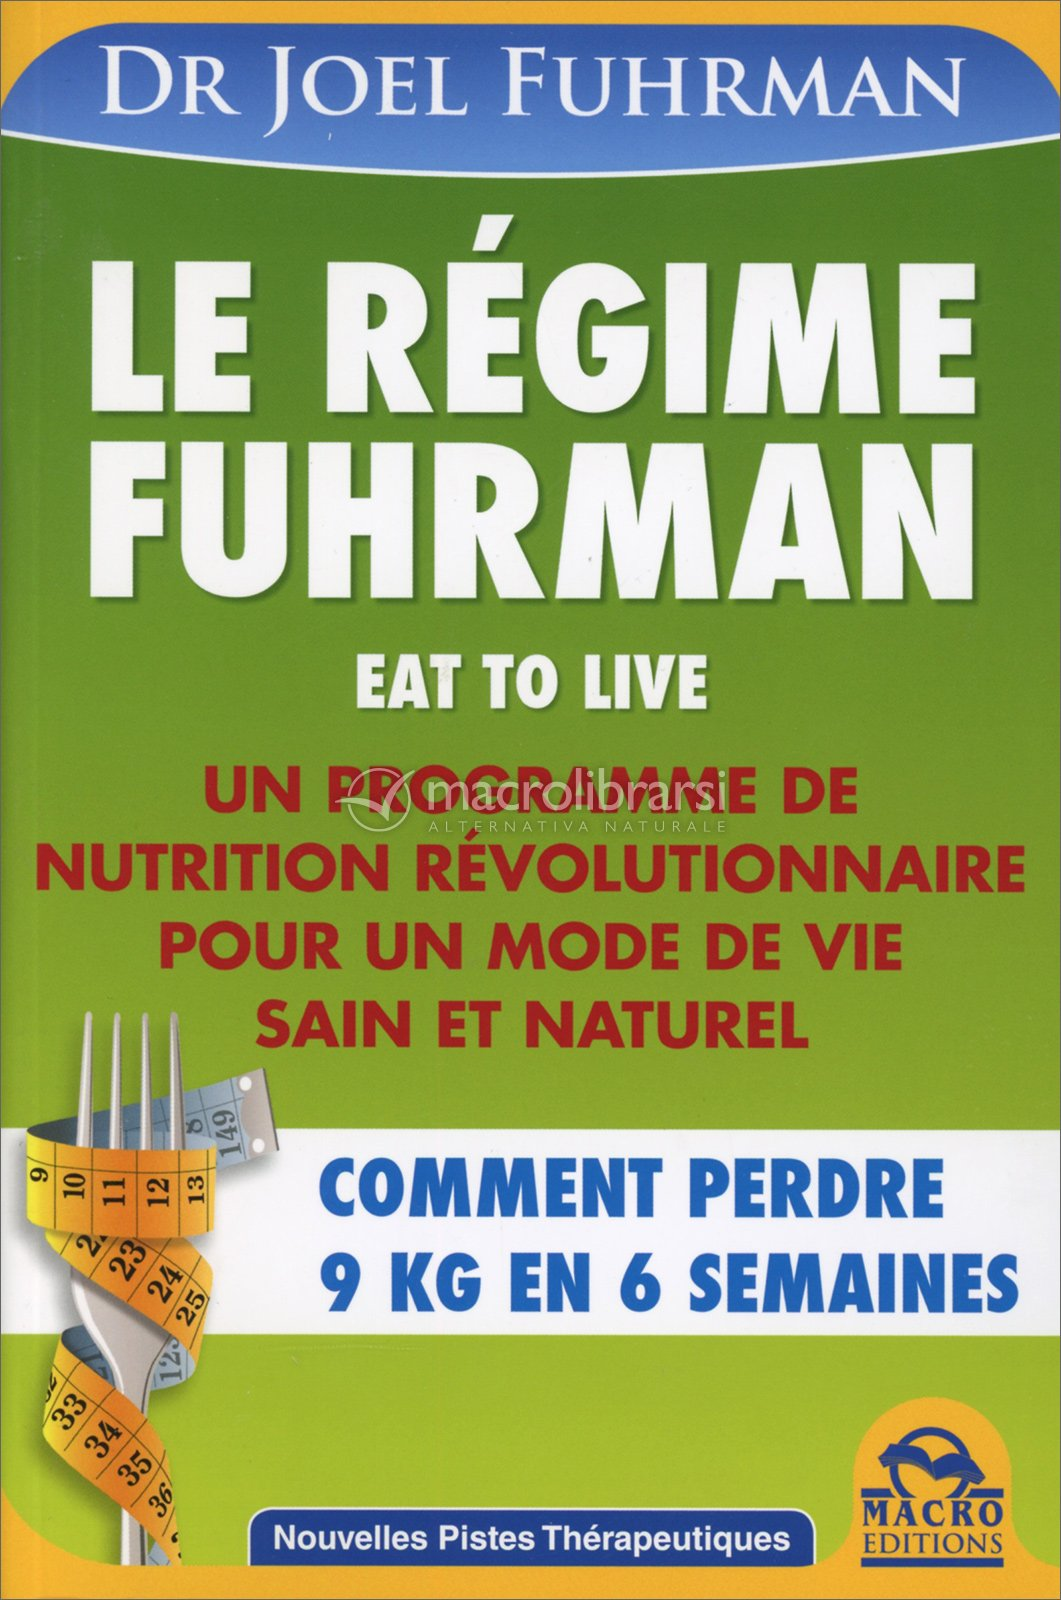 What Foods Are Not Allowed on Dr. Fuhrman s Eat to Live Diet